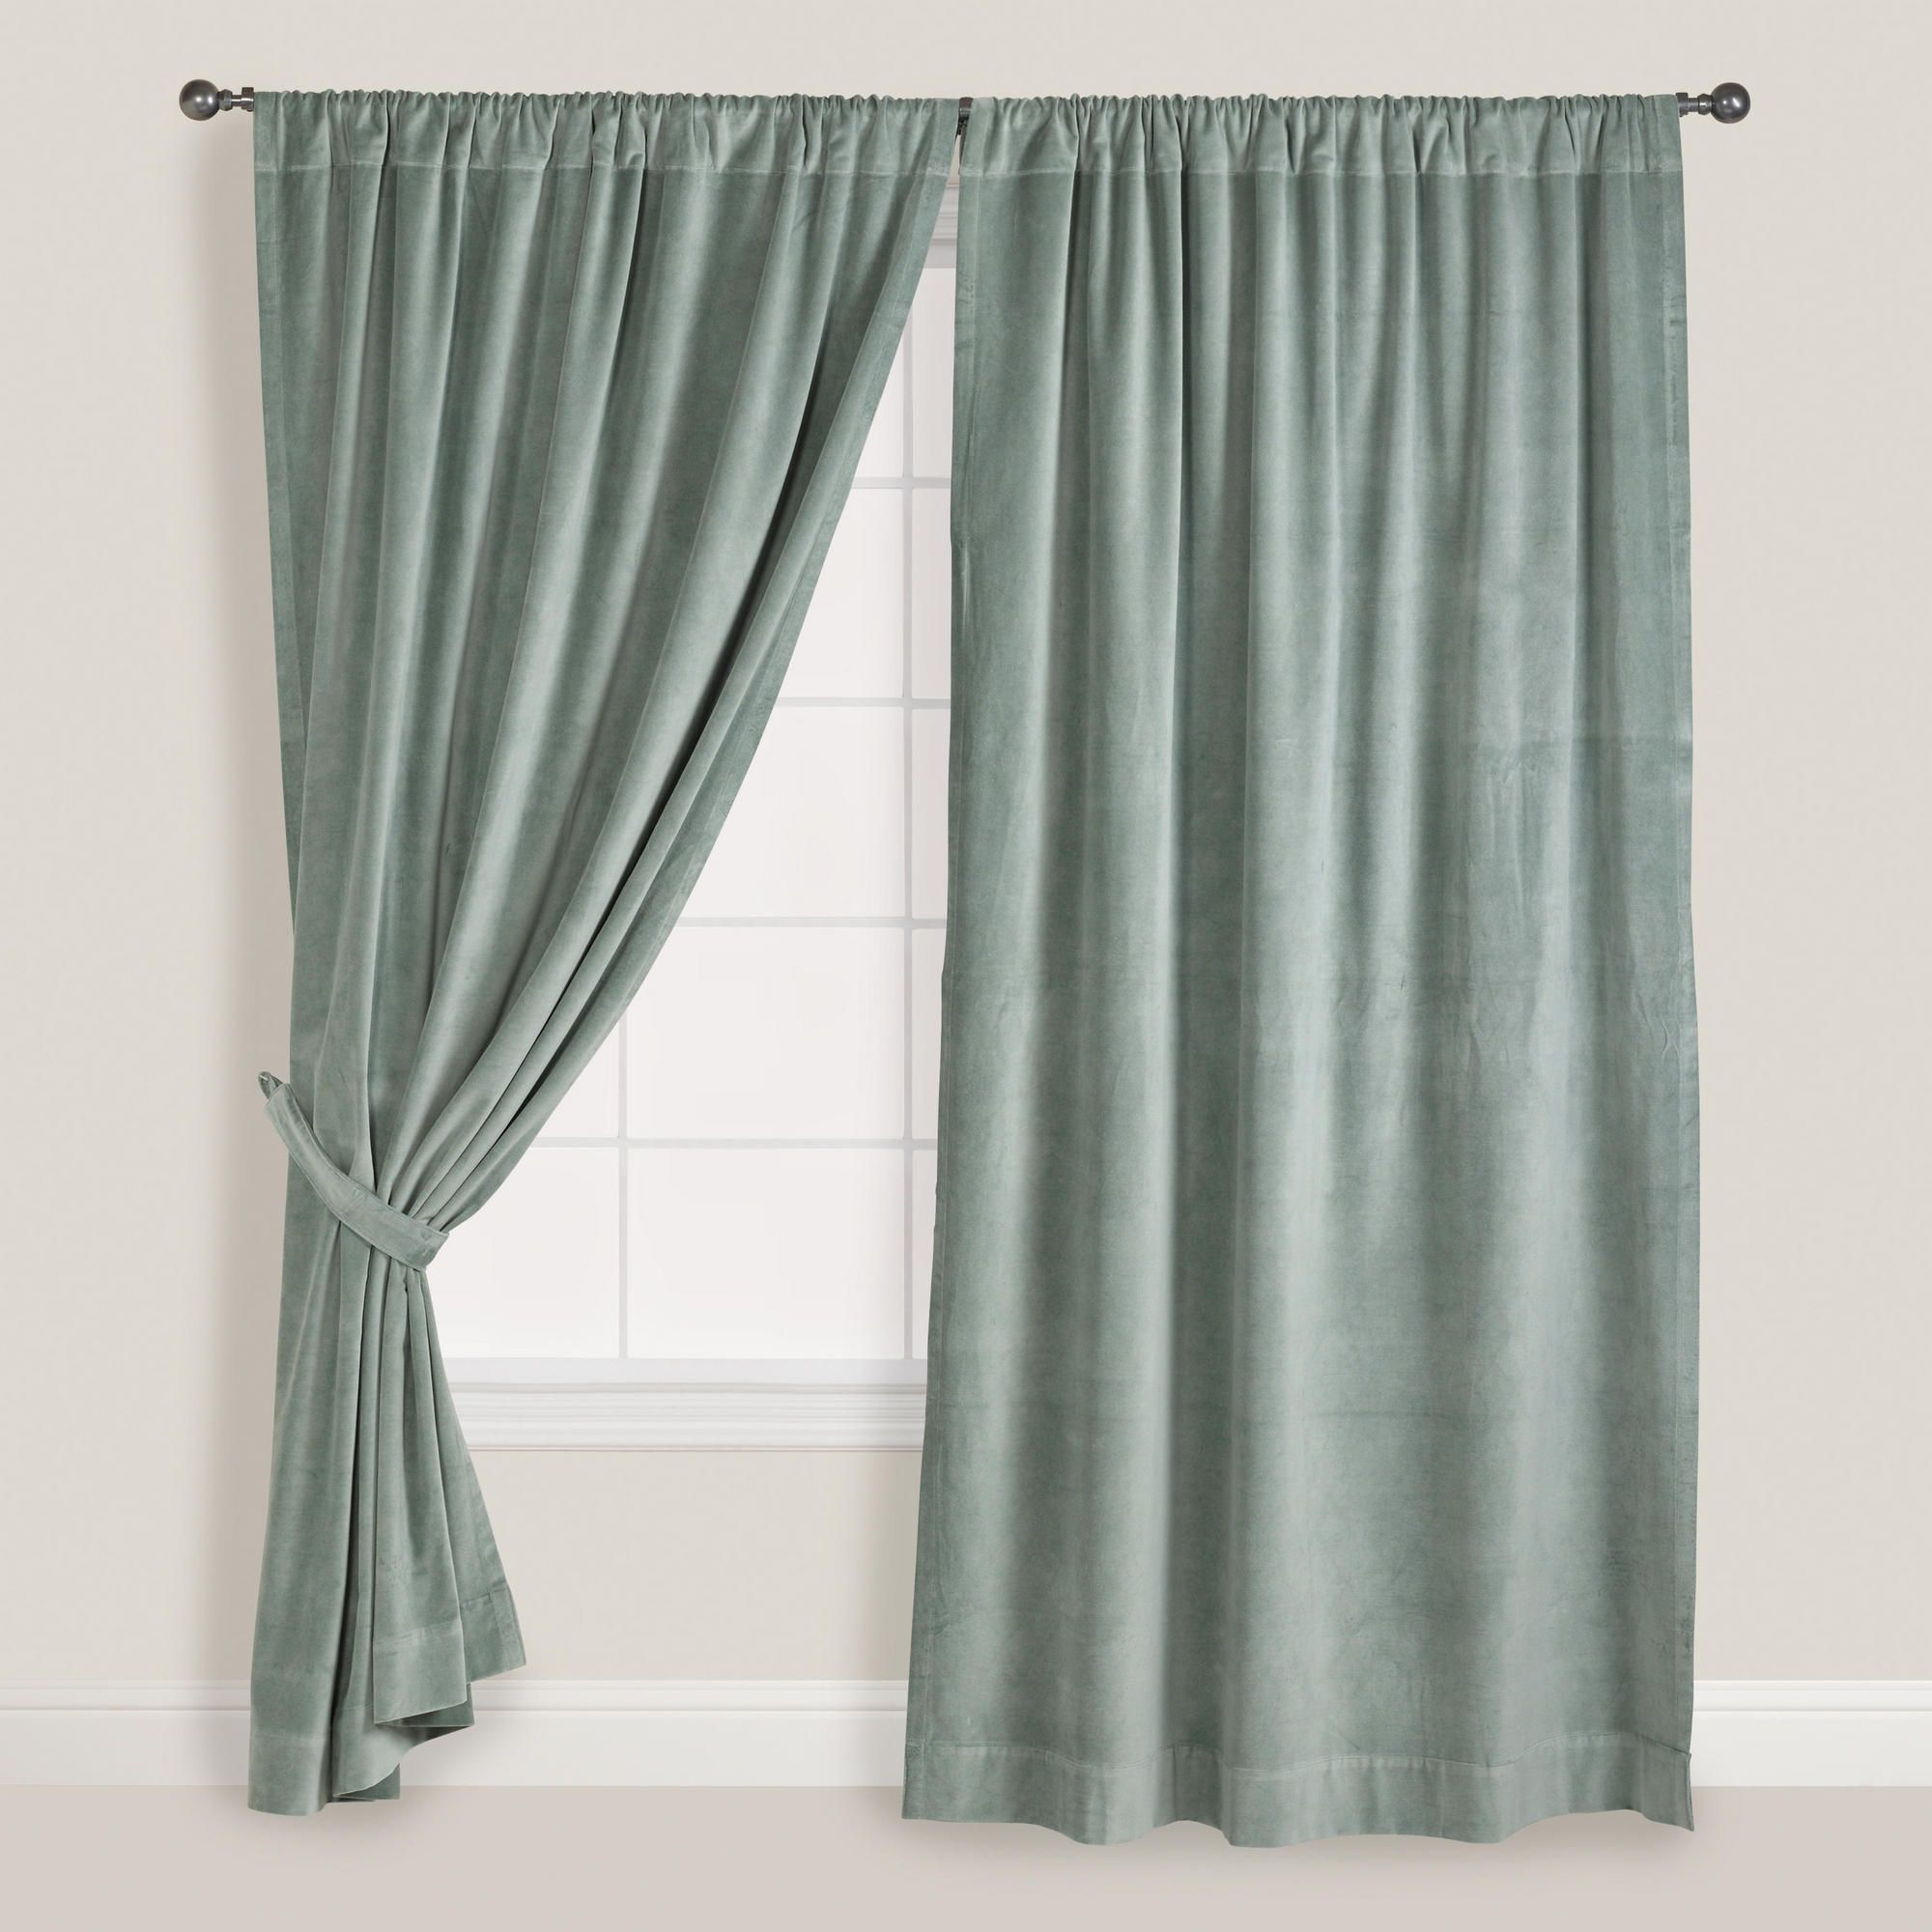 treatments elements grommet panels tone curtains wayfair floral reviews window sheer nature curtain naturefloral alpine pdx